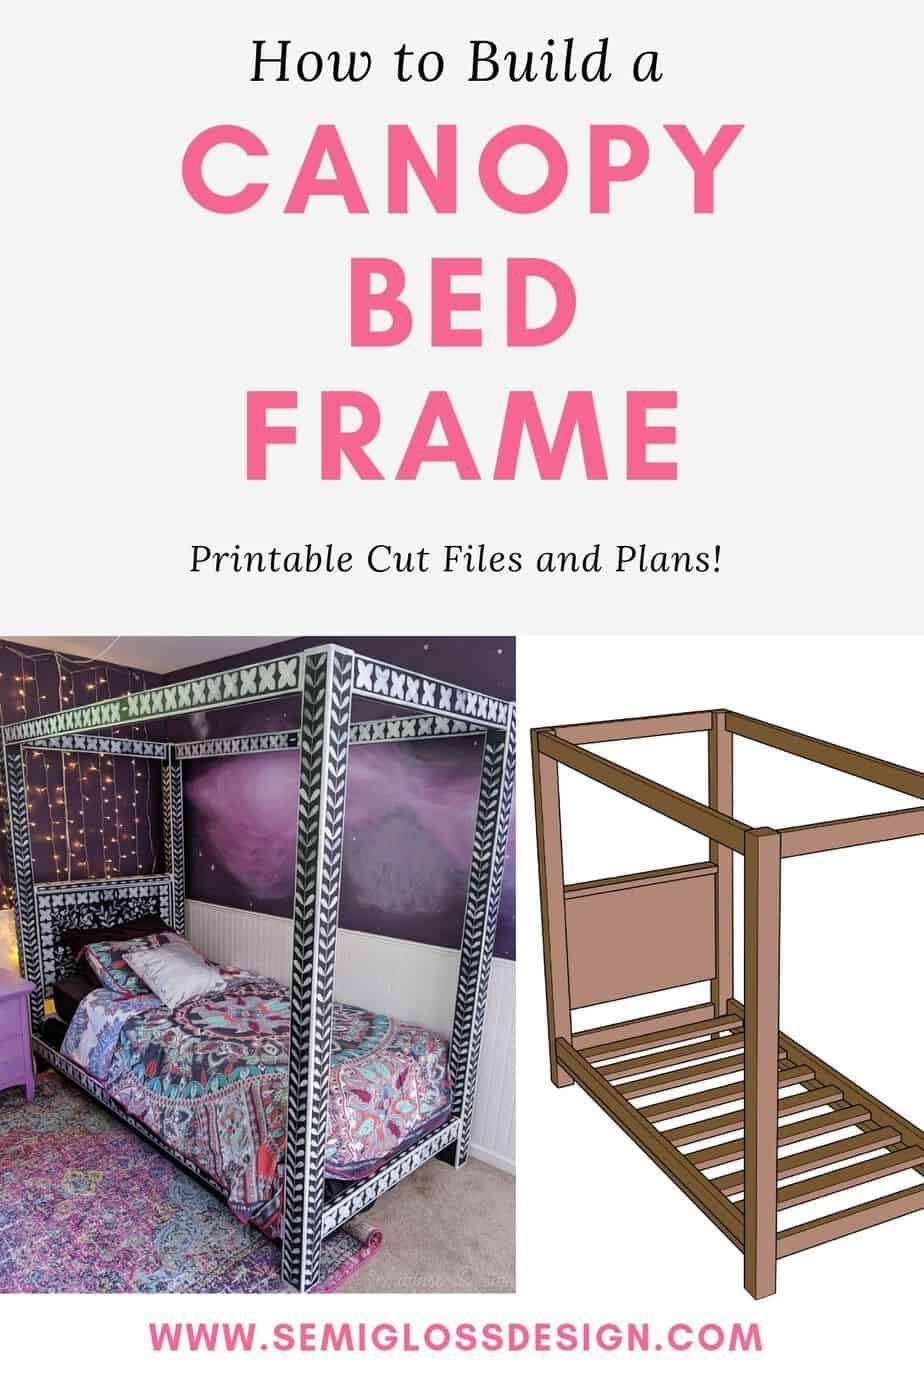 Learn how to build a DIY canopy bed frame. This modern bed